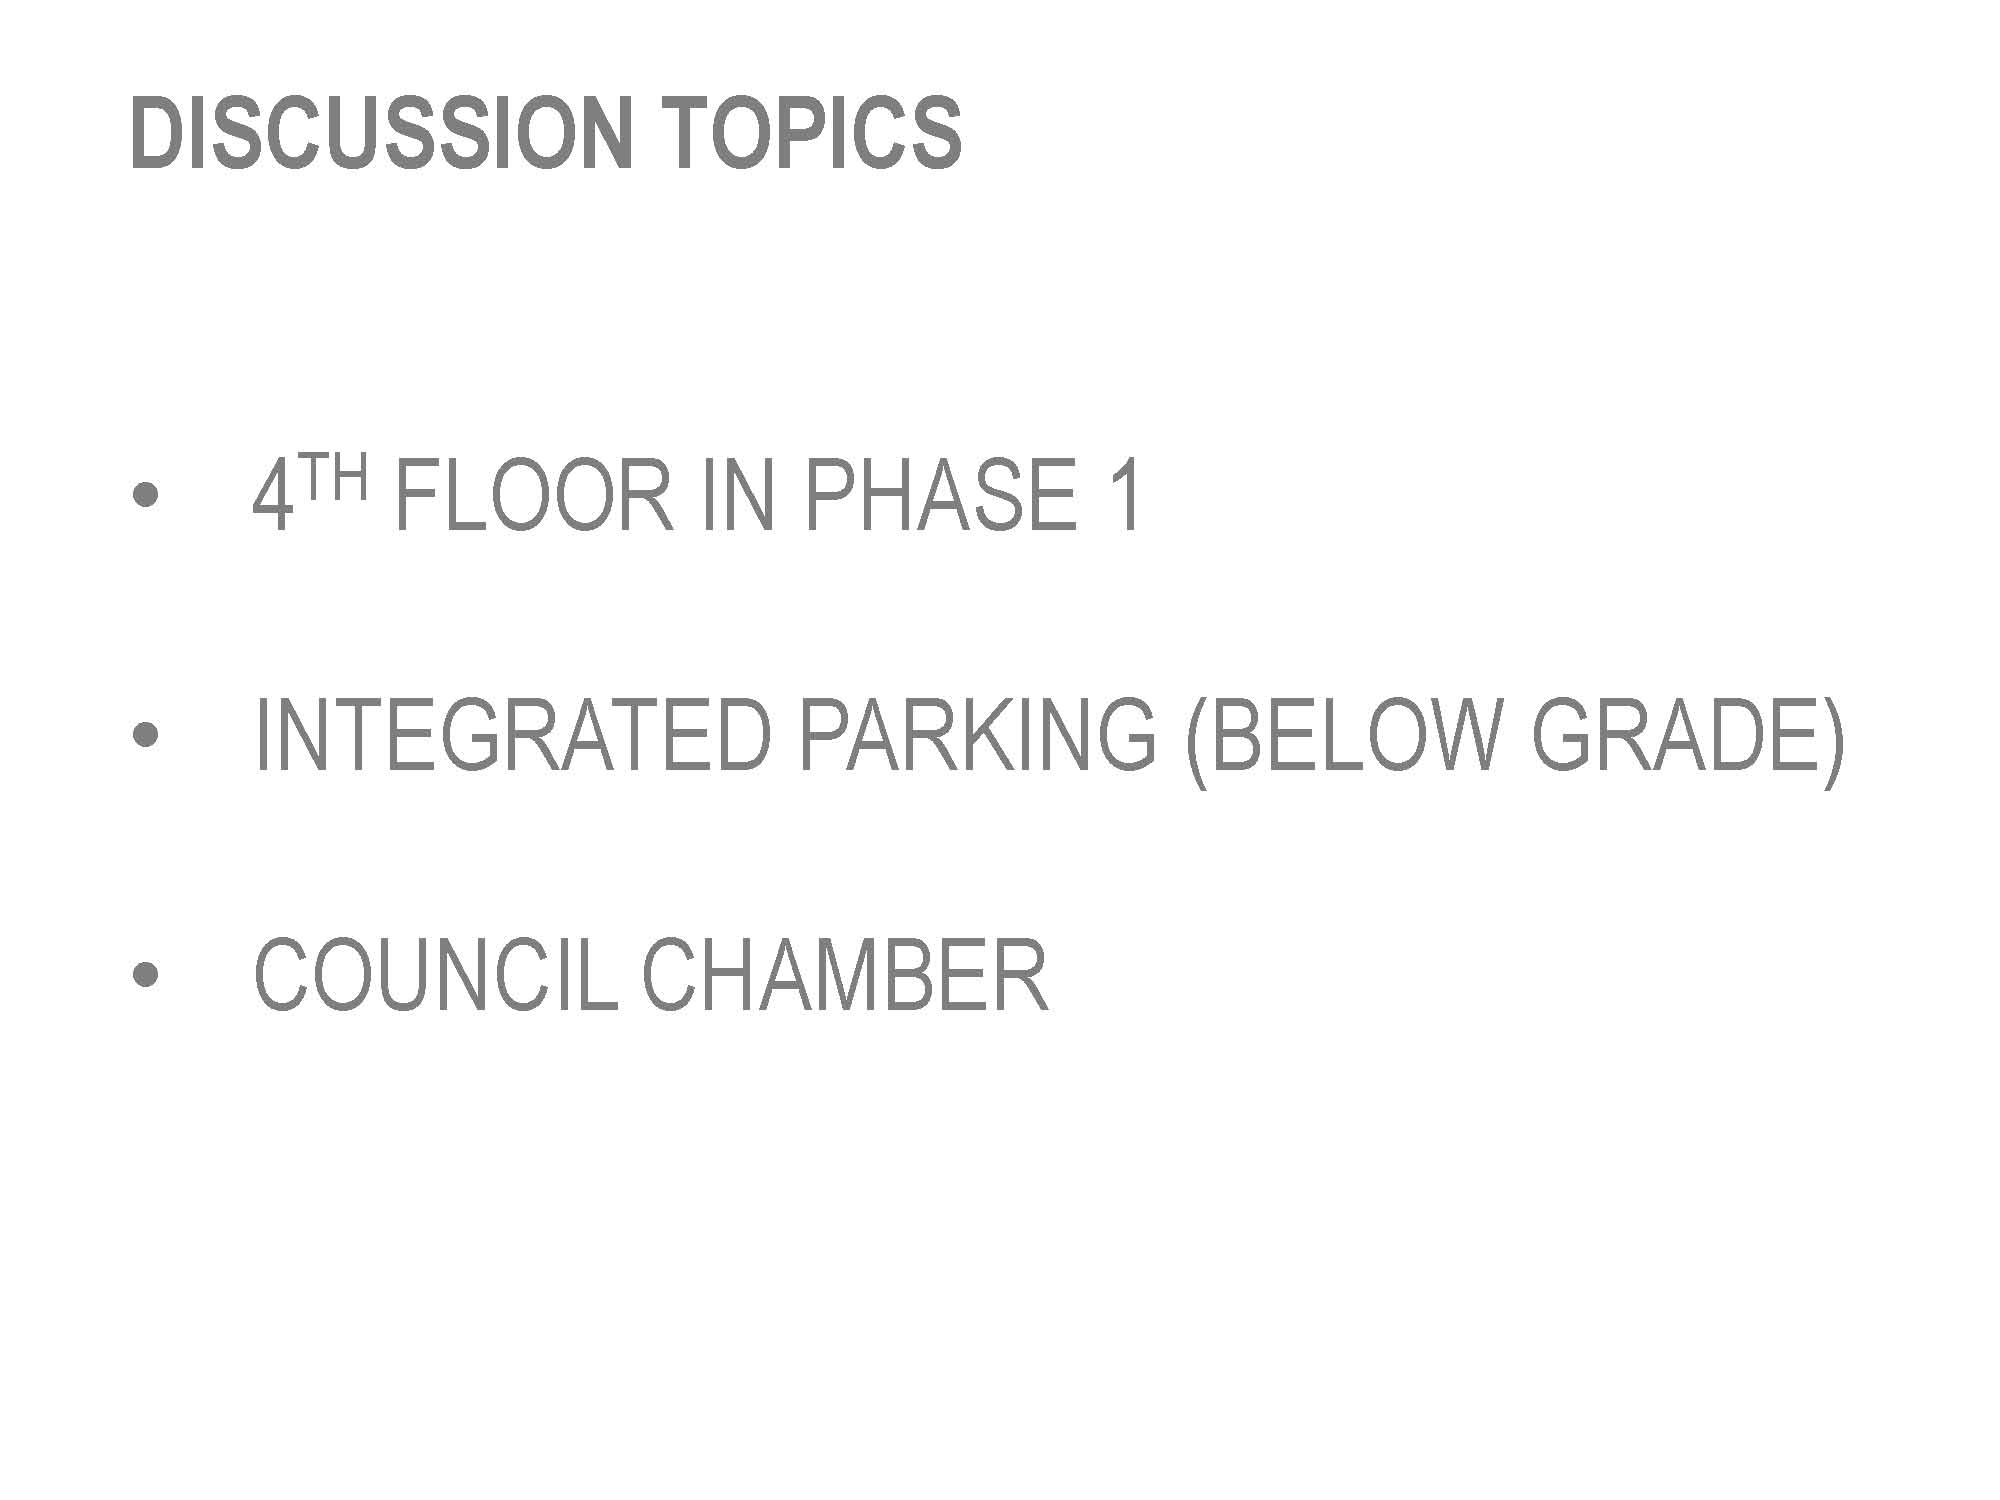 2014-10-27_CouncilDecisions_Finalweb_Page_04.jpg